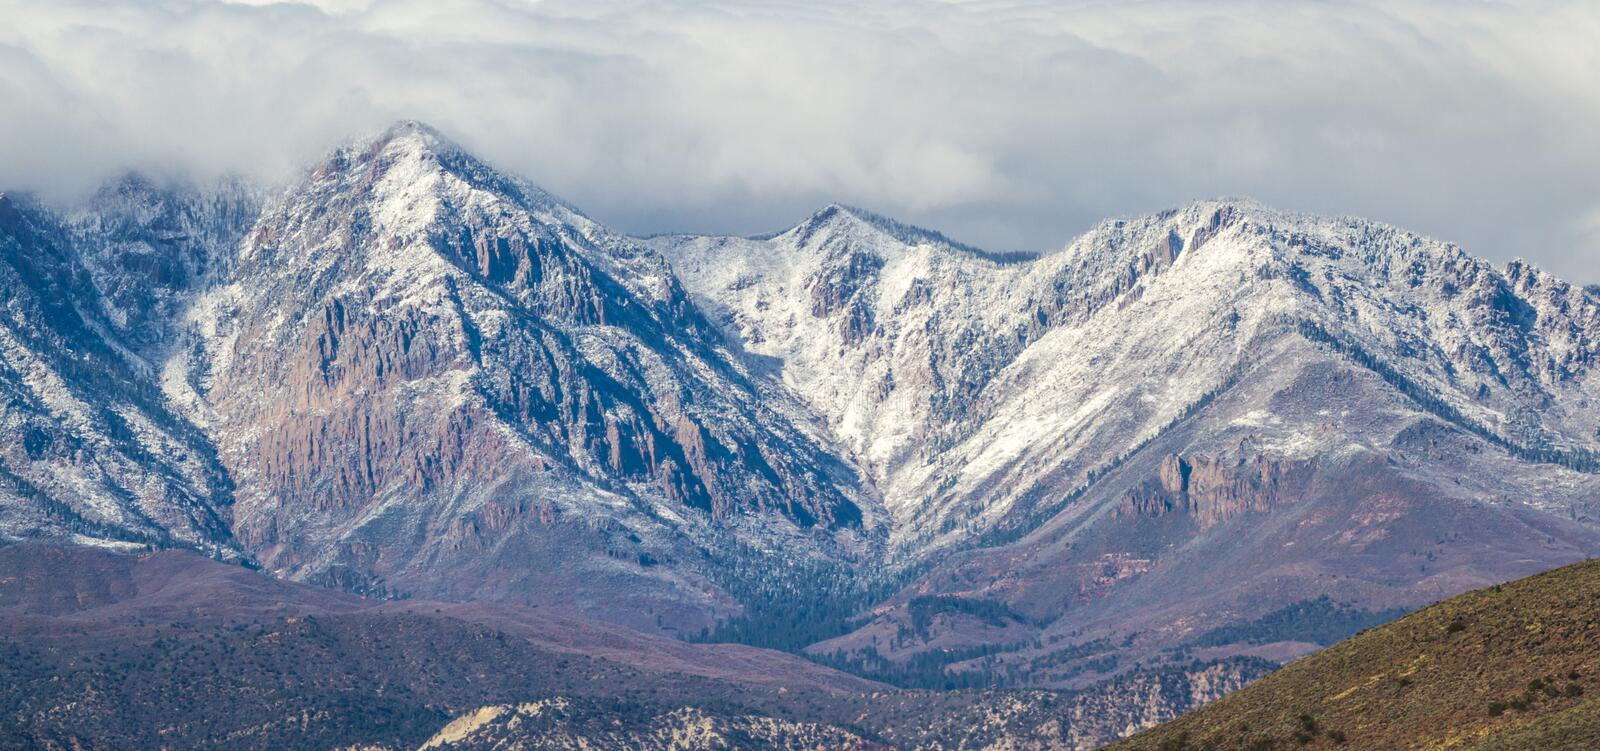 First snow on the mountains royalty free stock photo